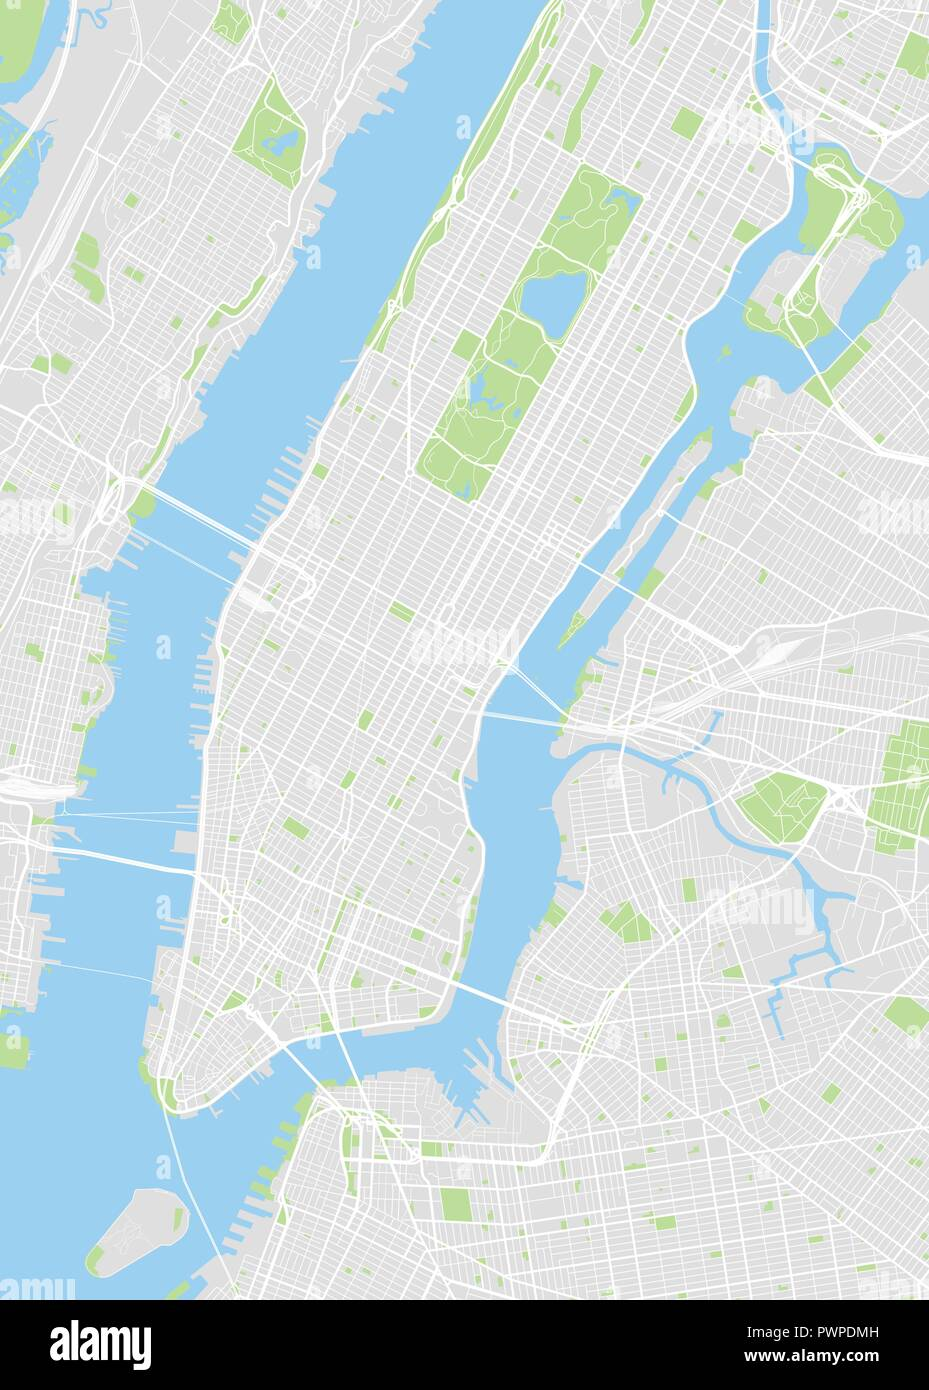 Map Of New York Rivers.New York Colored Vector Map Detailed Plan Of The City Rivers And